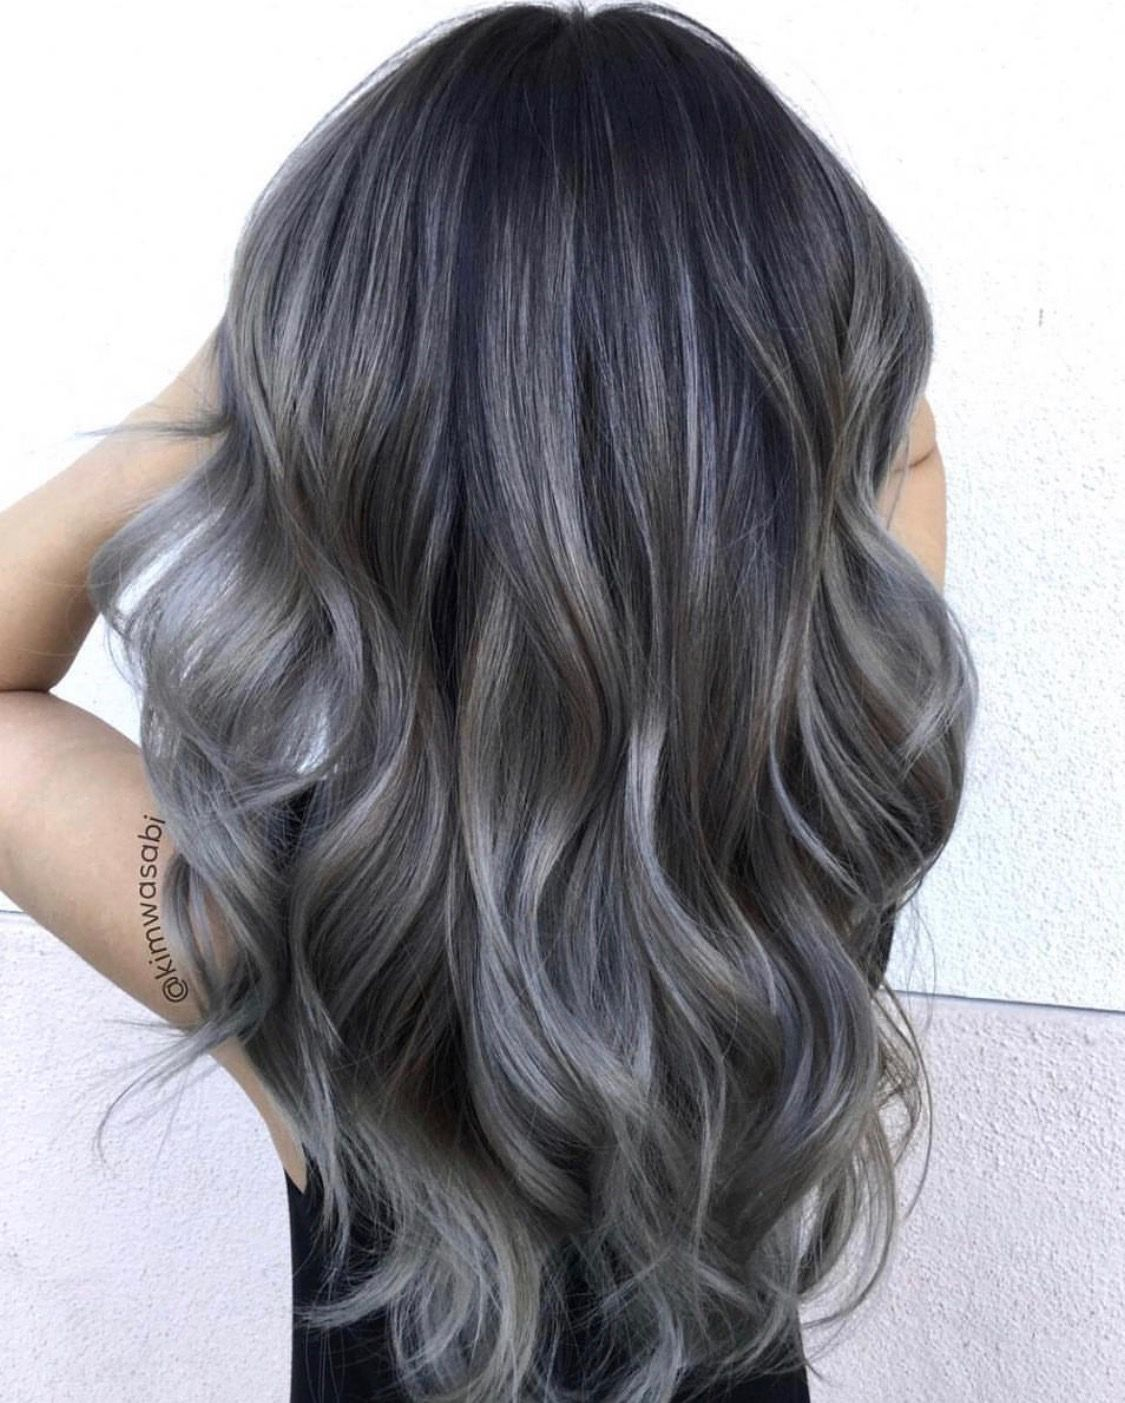 ash grey balayage balayage ombre colorful in 2019. Black Bedroom Furniture Sets. Home Design Ideas